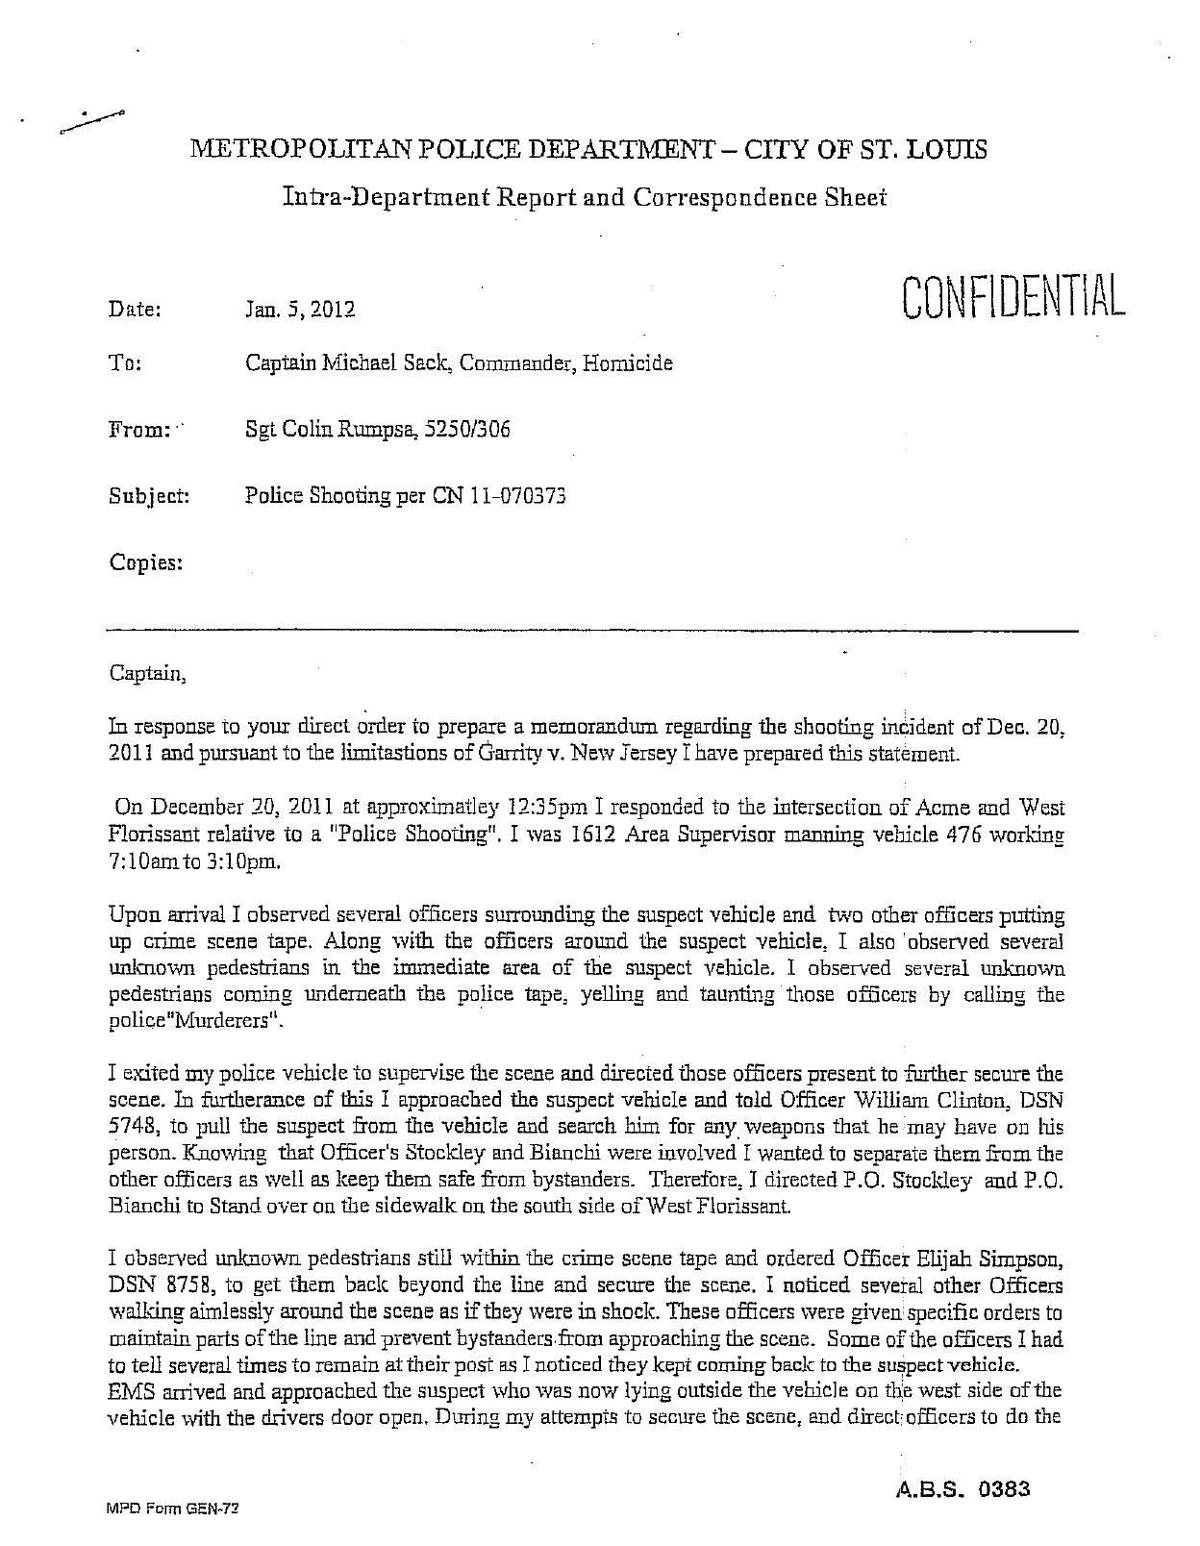 Murder trial of ex cop in st louis could draw national attention download pdf sgt colin rumpsas internal report and fbi statement madrichimfo Gallery